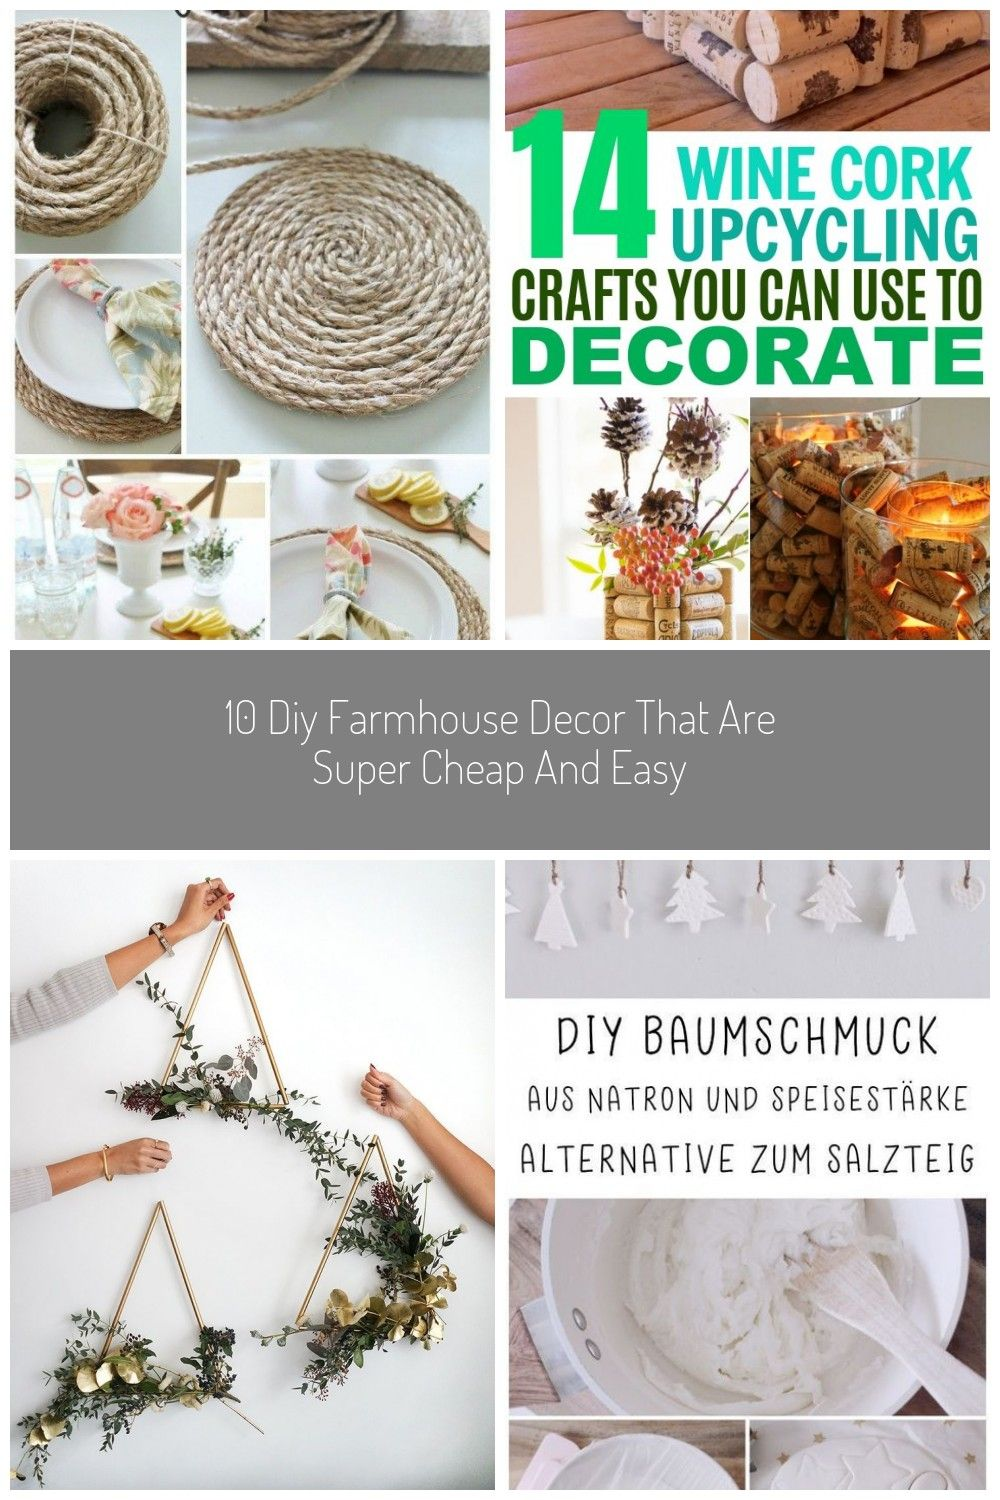 Super Easy And Cheap Diy Farmhouse Decor Ideas For Your Home Pottery Barn Inspired Round Jute Placemats And Others Diy Diy Home Decor Baumschmuck Salzteig Und Frau